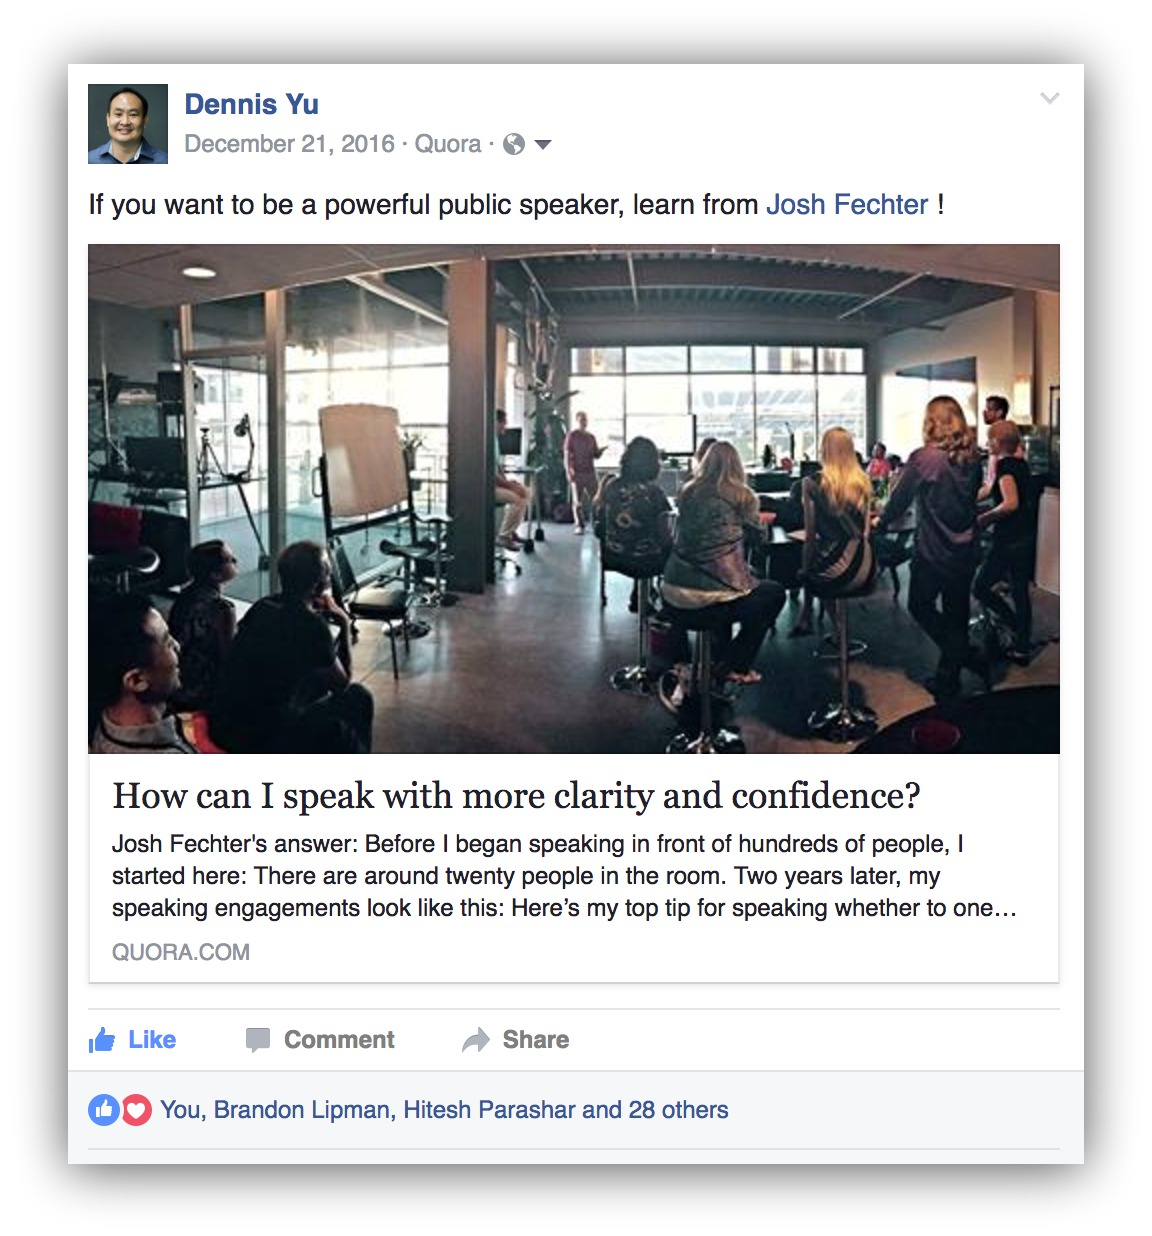 Screenshot showing a Facebook post linking to a Quora question